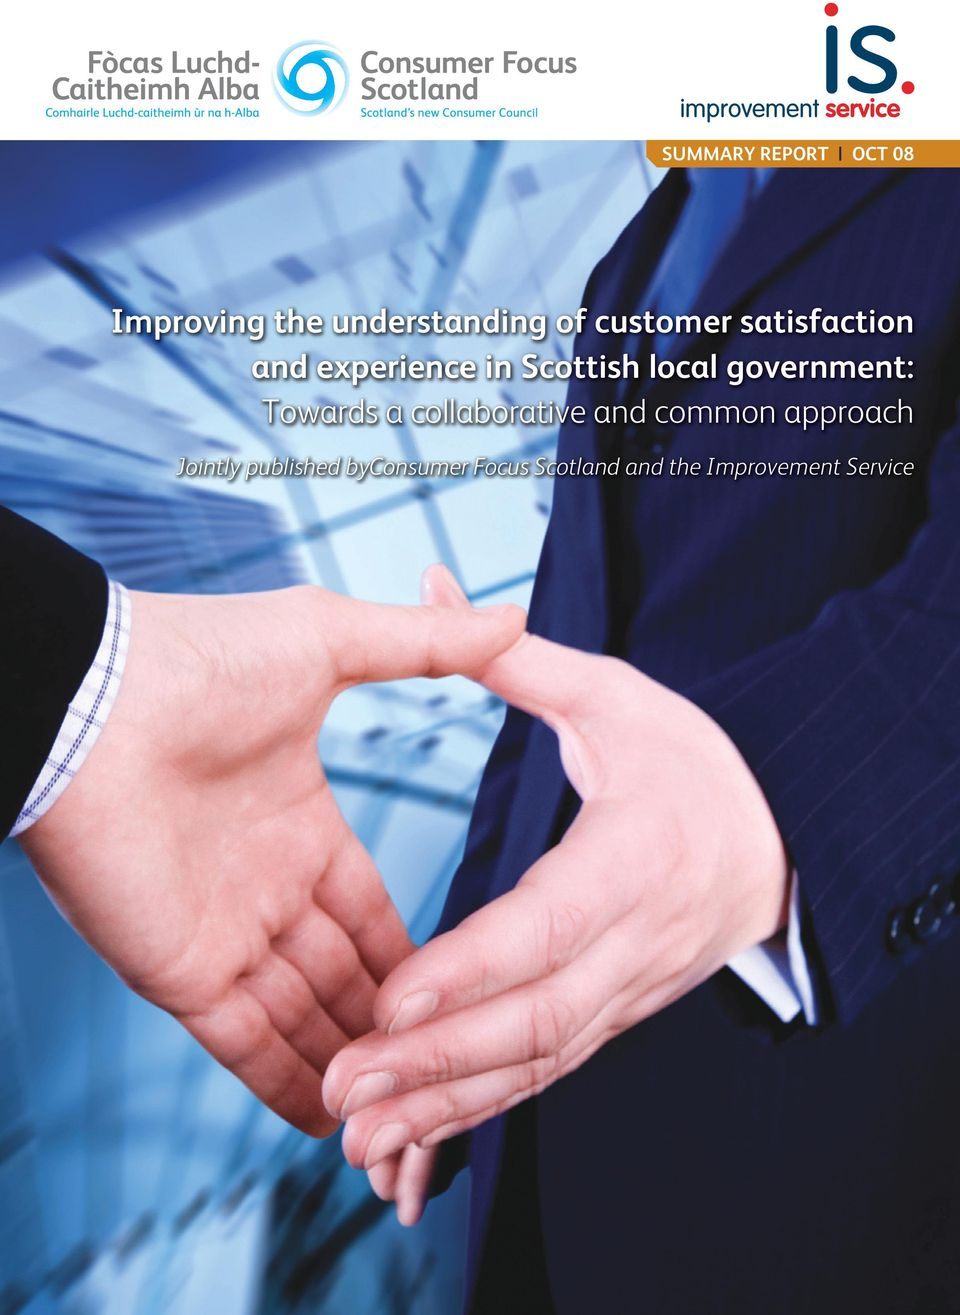 government: Towards a collaborative and common approach